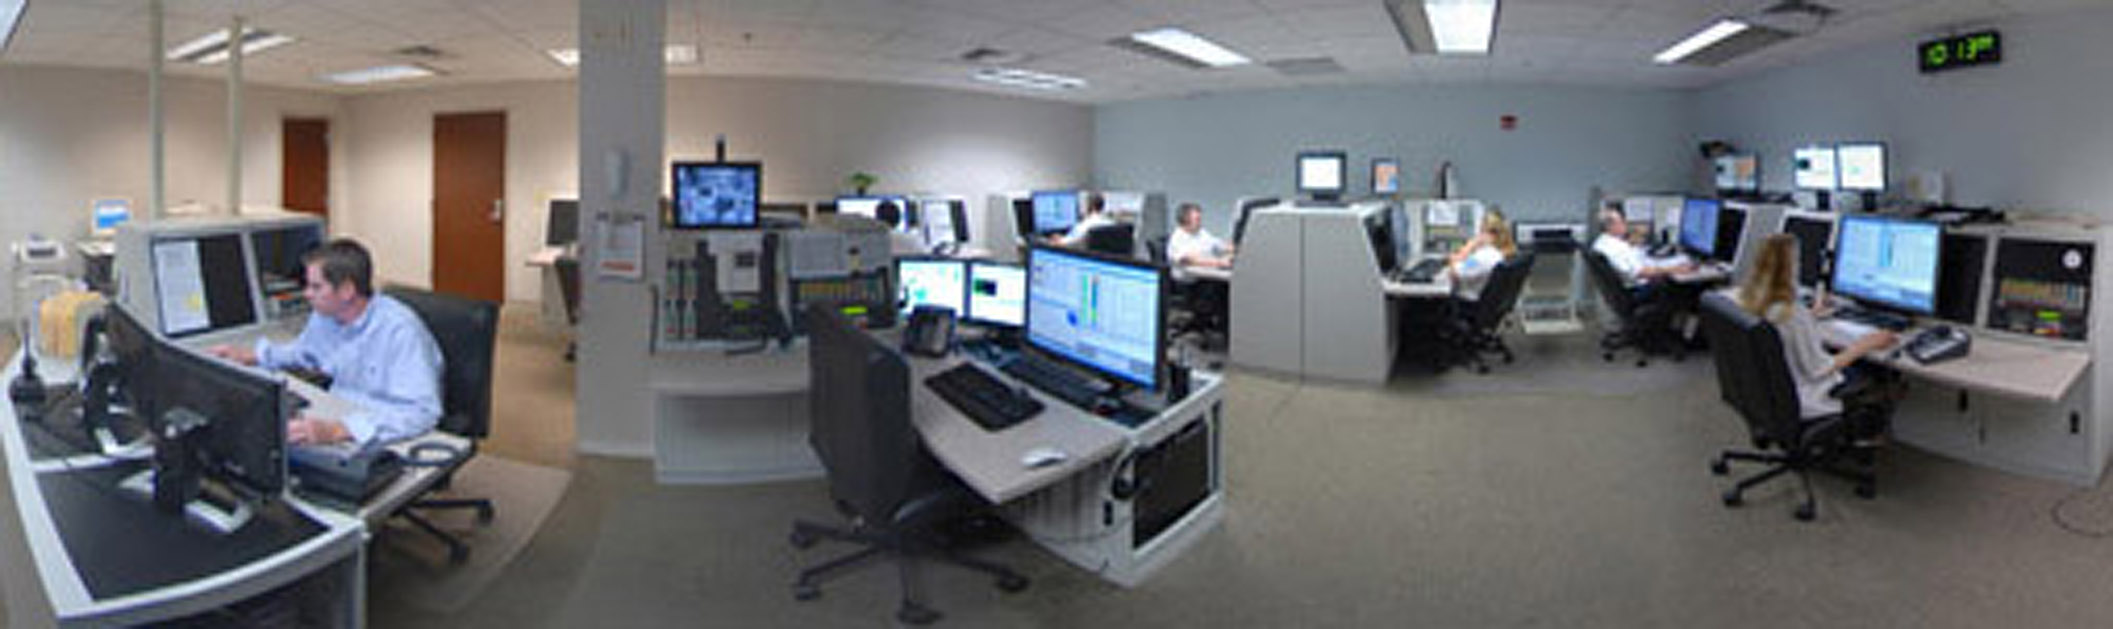 911 dispatch service fallon ambulance service this certification enables fas emergency medical dispatchers to provide lifesaving instructions to callers who need 9 1 1 ambulance service 1betcityfo Gallery